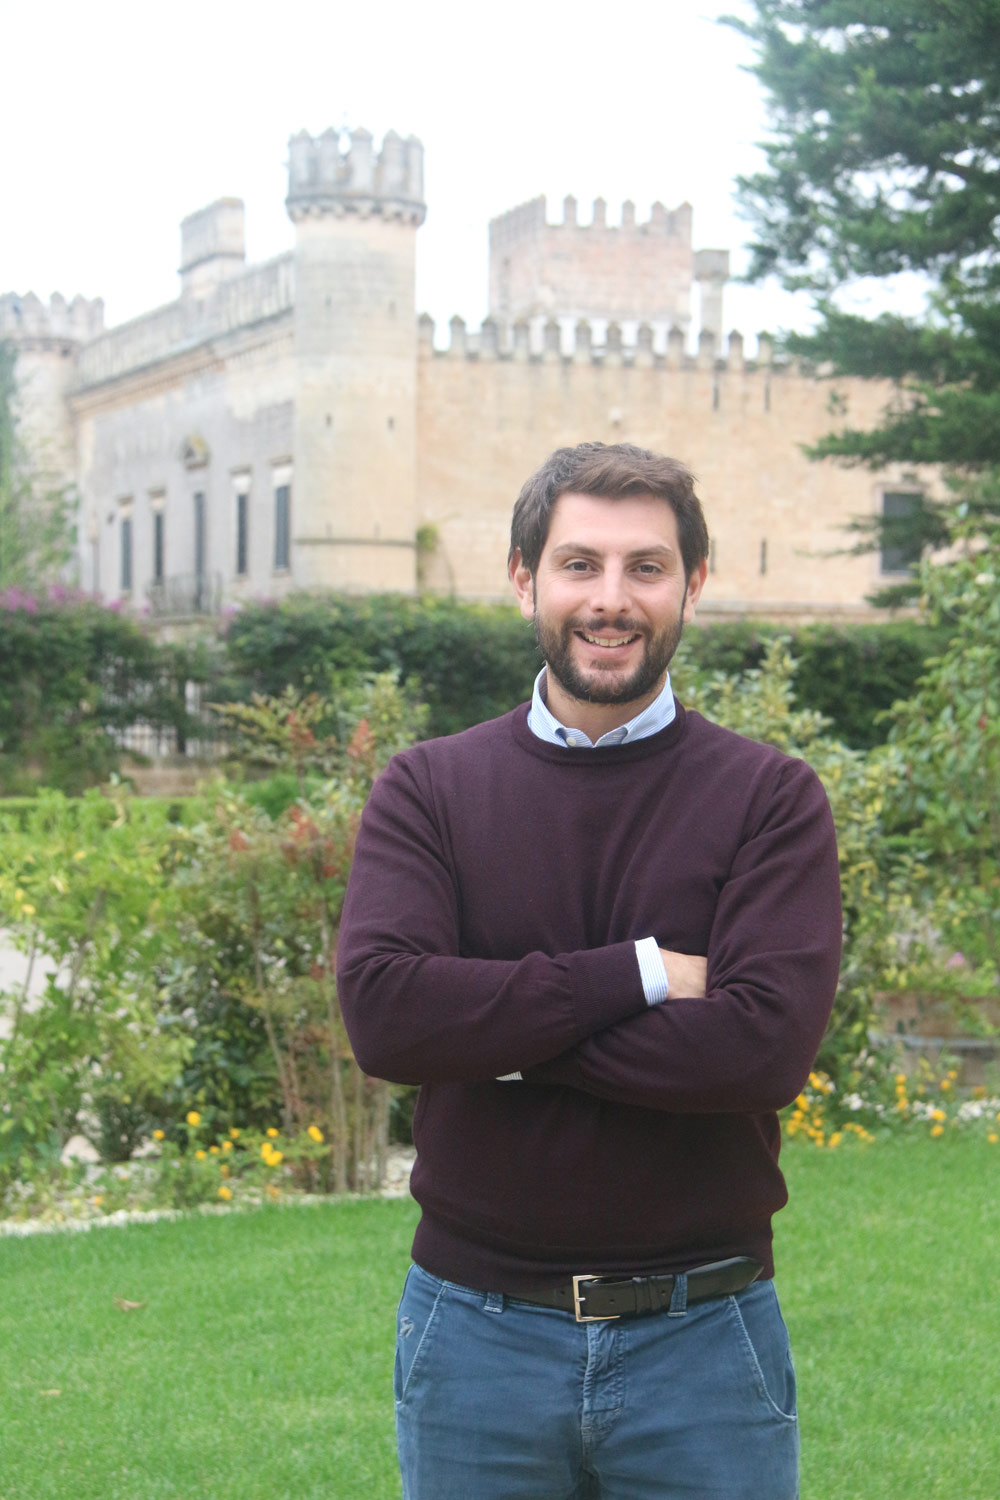 4th generation winery owner Luigi Seracca Guerrieri at Castello Monaci